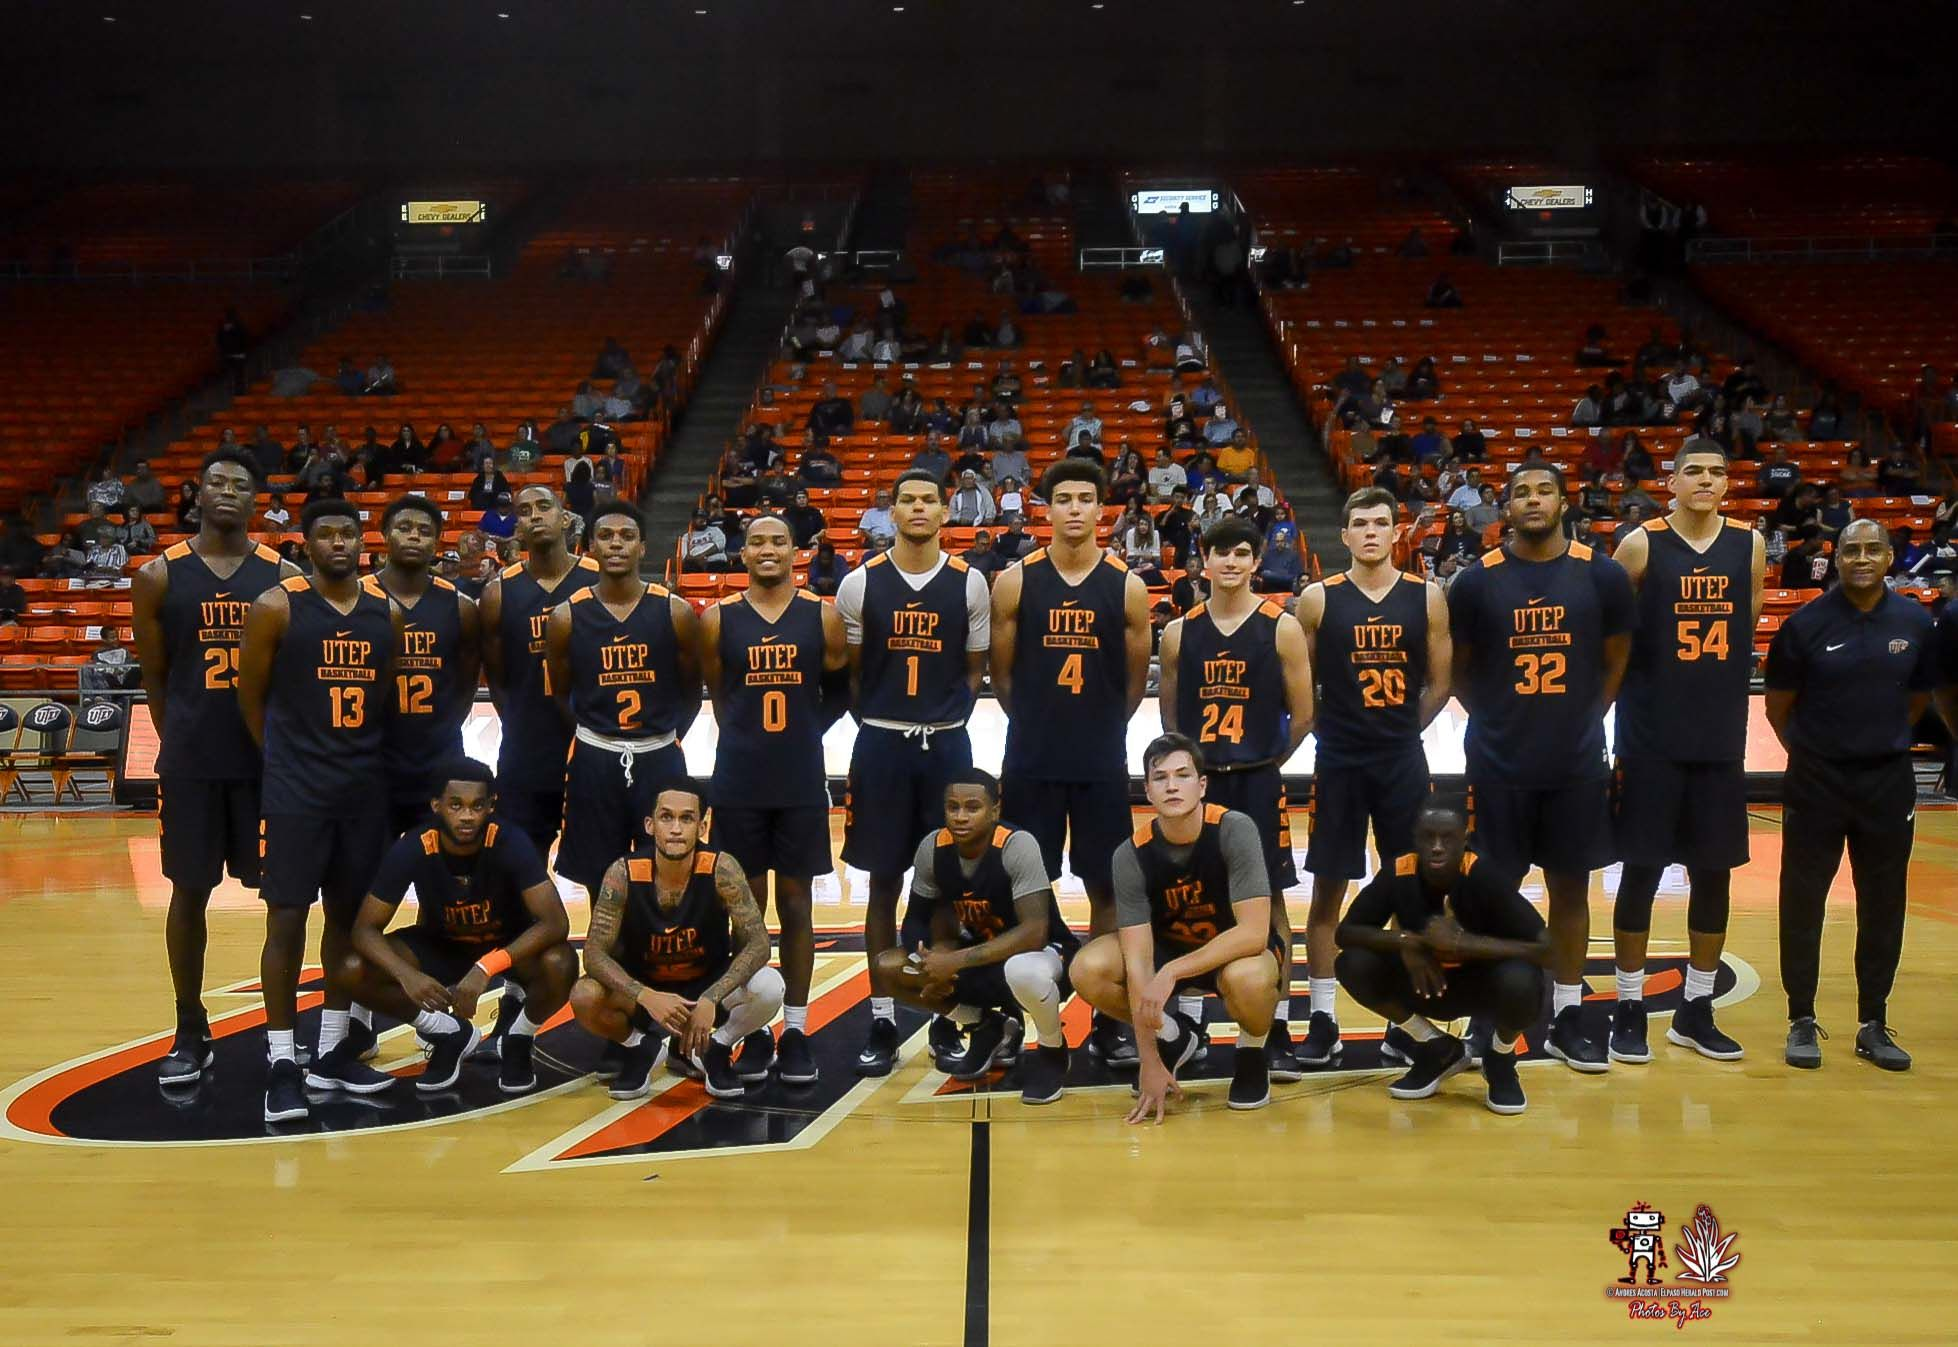 Both The Utep Miner Men S And Women S Teams Were In Action Wednesday Night As They Hosted Their Basketball Showcase Womens Basketball Basketball Men